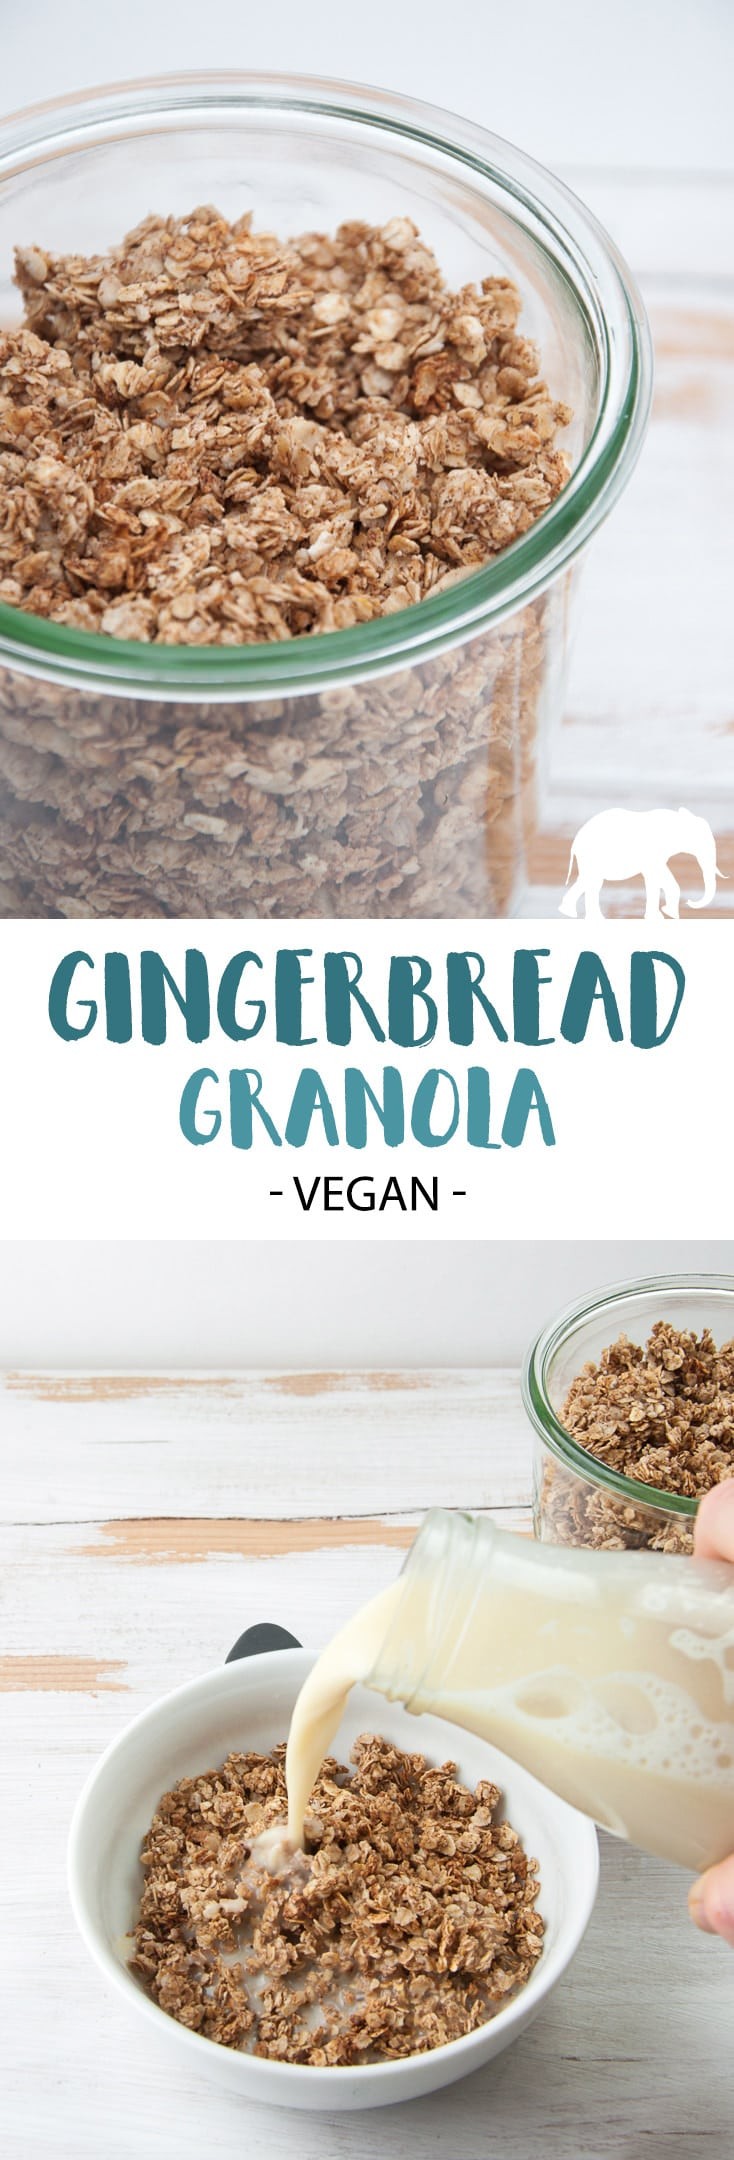 Vegan Gingerbread Granola (perfect for the Christmas season!) #vegan #granola #gingerbread #breakfast